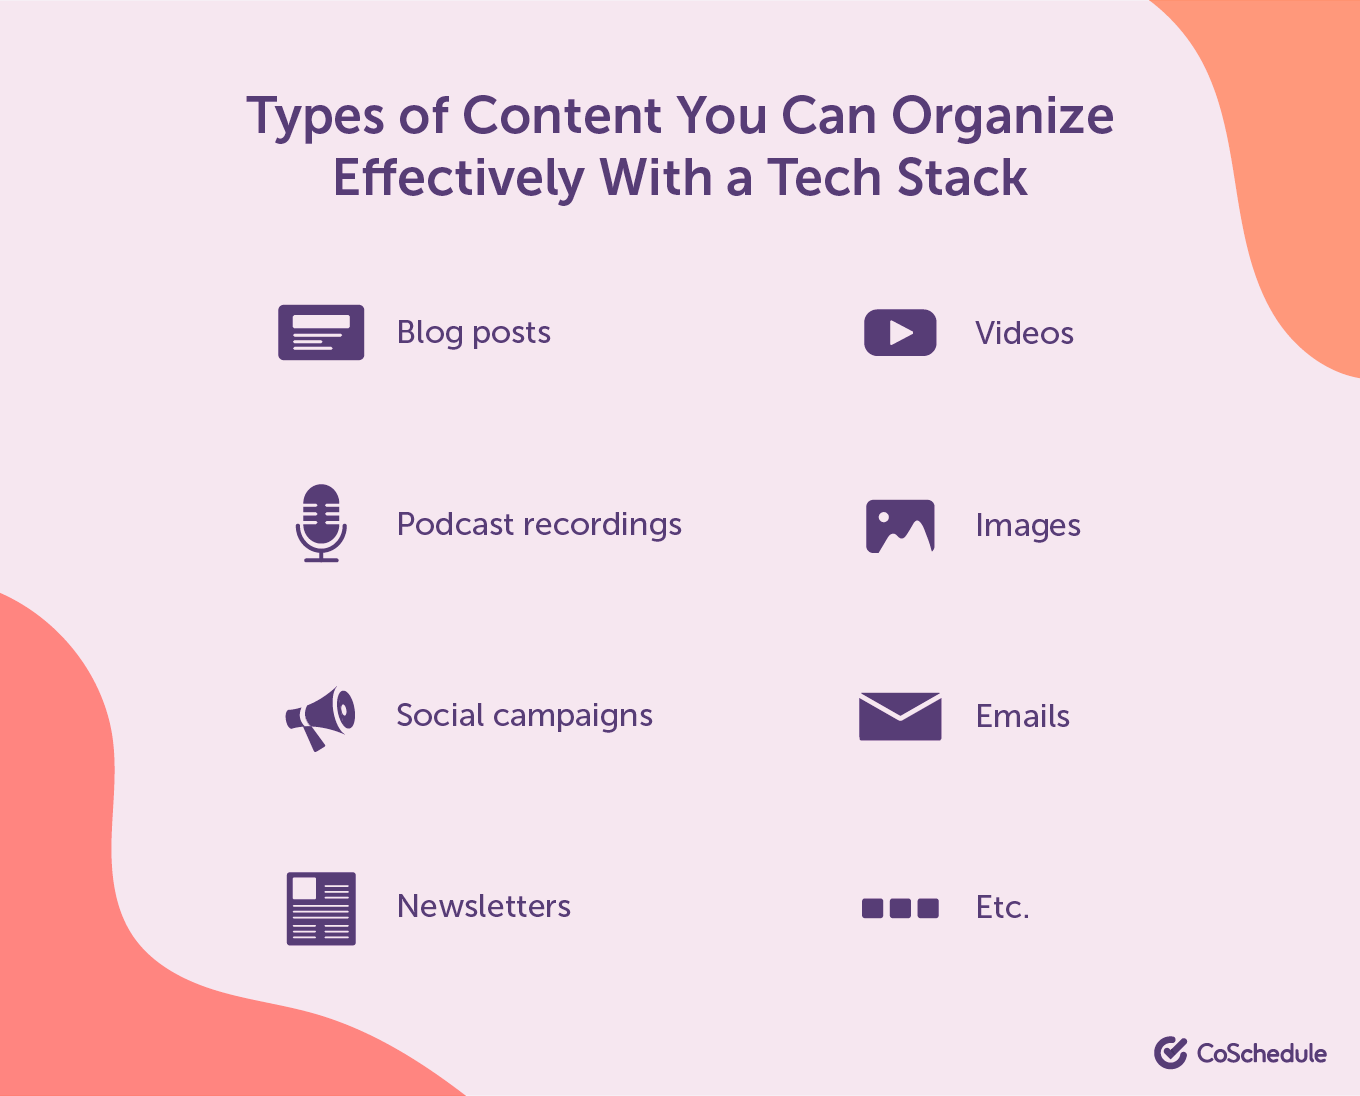 Types of content you can operate effectively with a tech stack